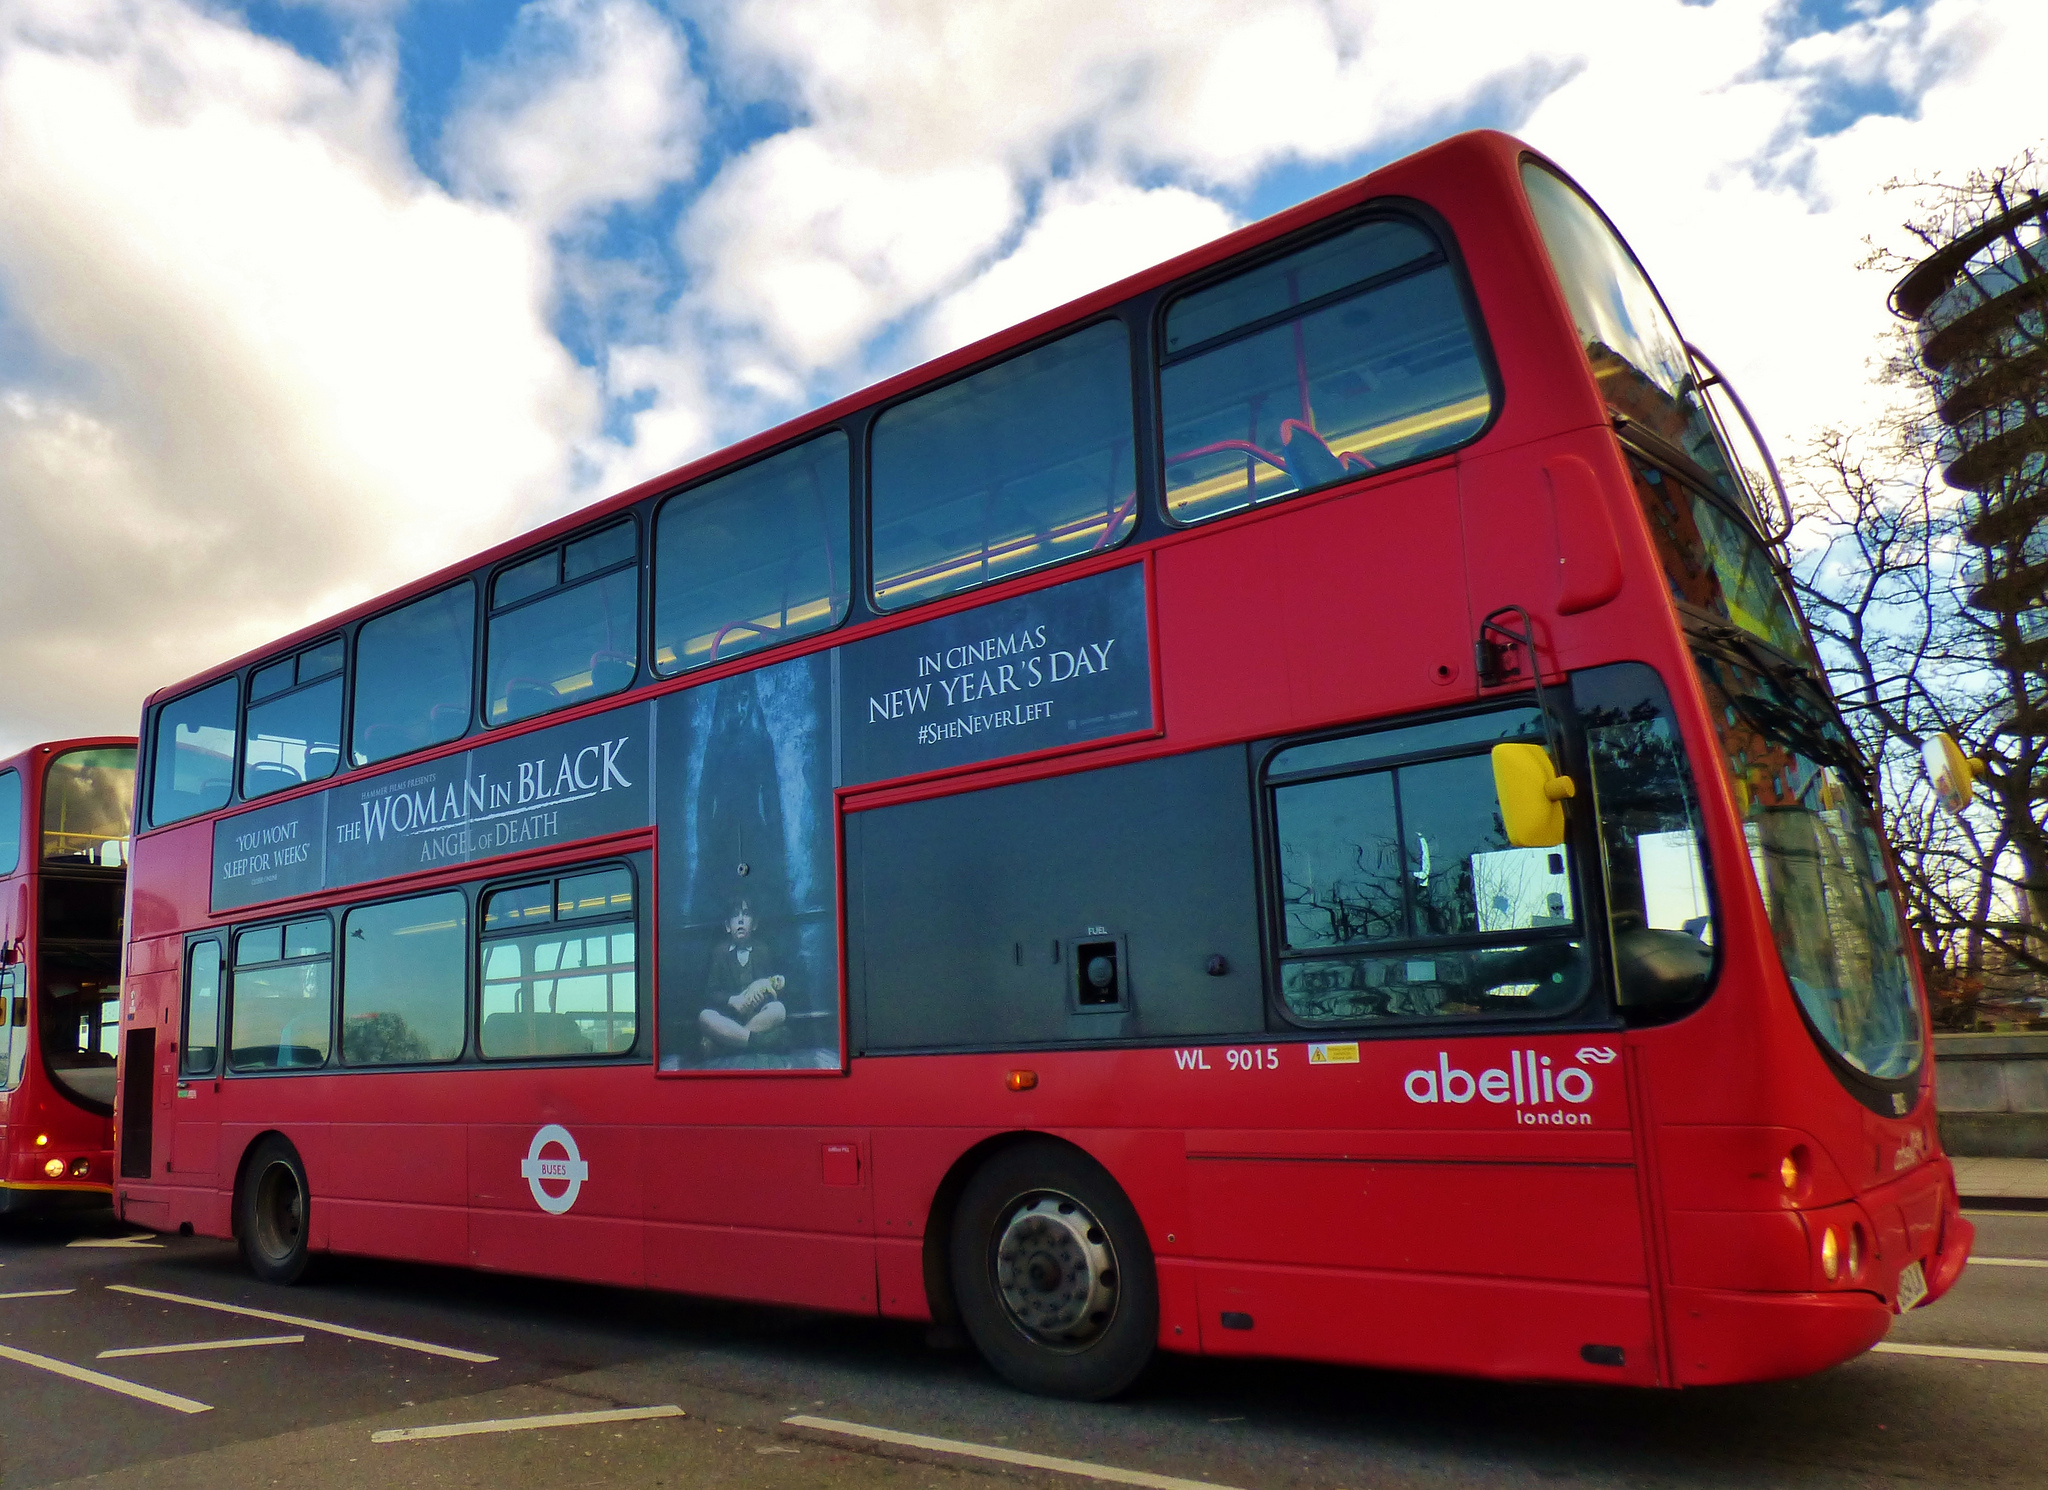 New bus route 335 between Kidbrooke and North Greenwich begins in October